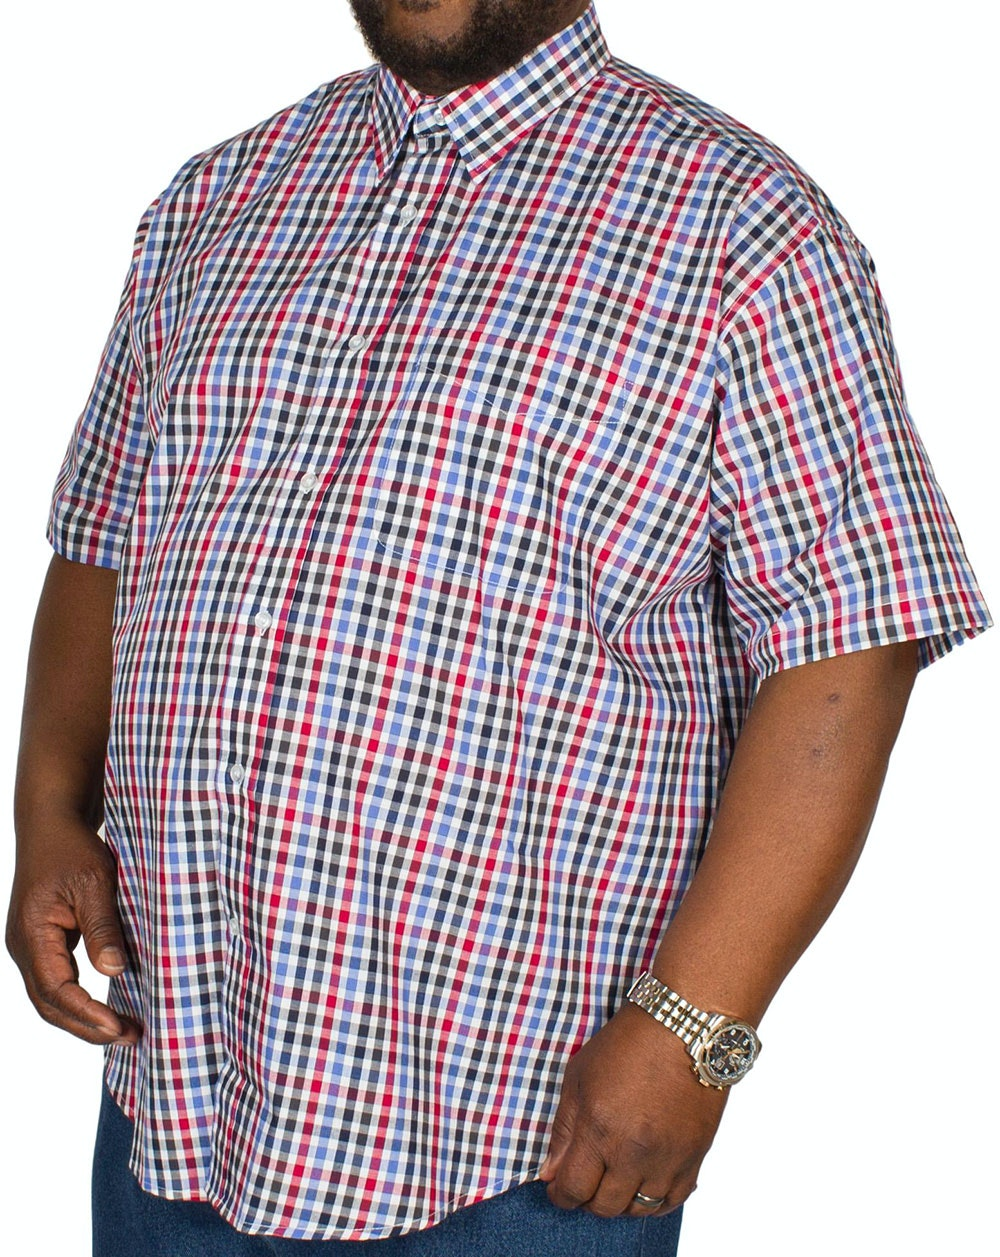 Metaphor Short Sleeve Small Check Shirt Red/Blue